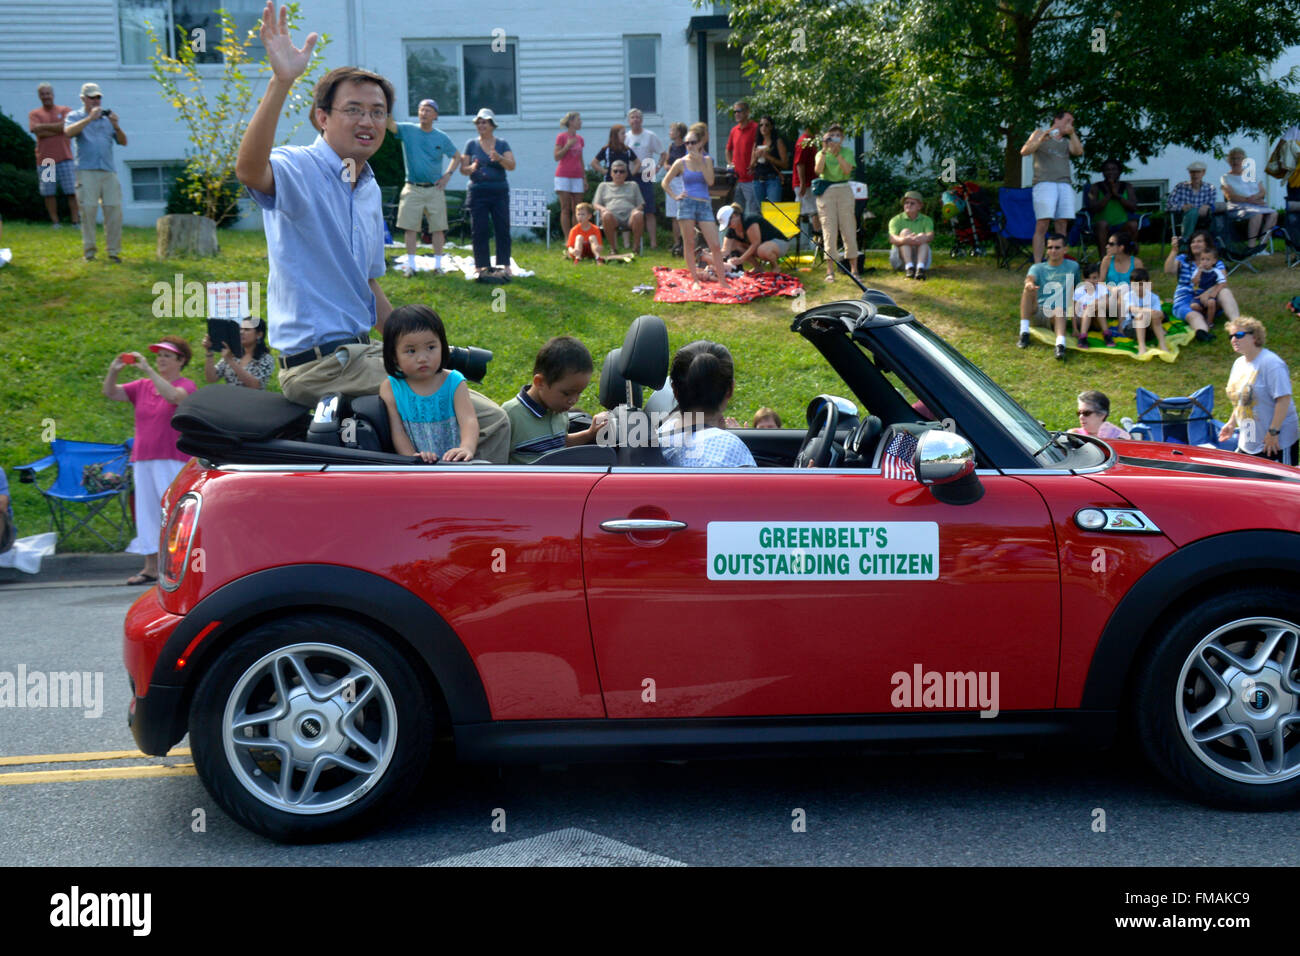 Greenbelt's outstanding ctizen rides in the Labor Day with his kids in a Parade in Greenbelt, Maryland - Stock Image